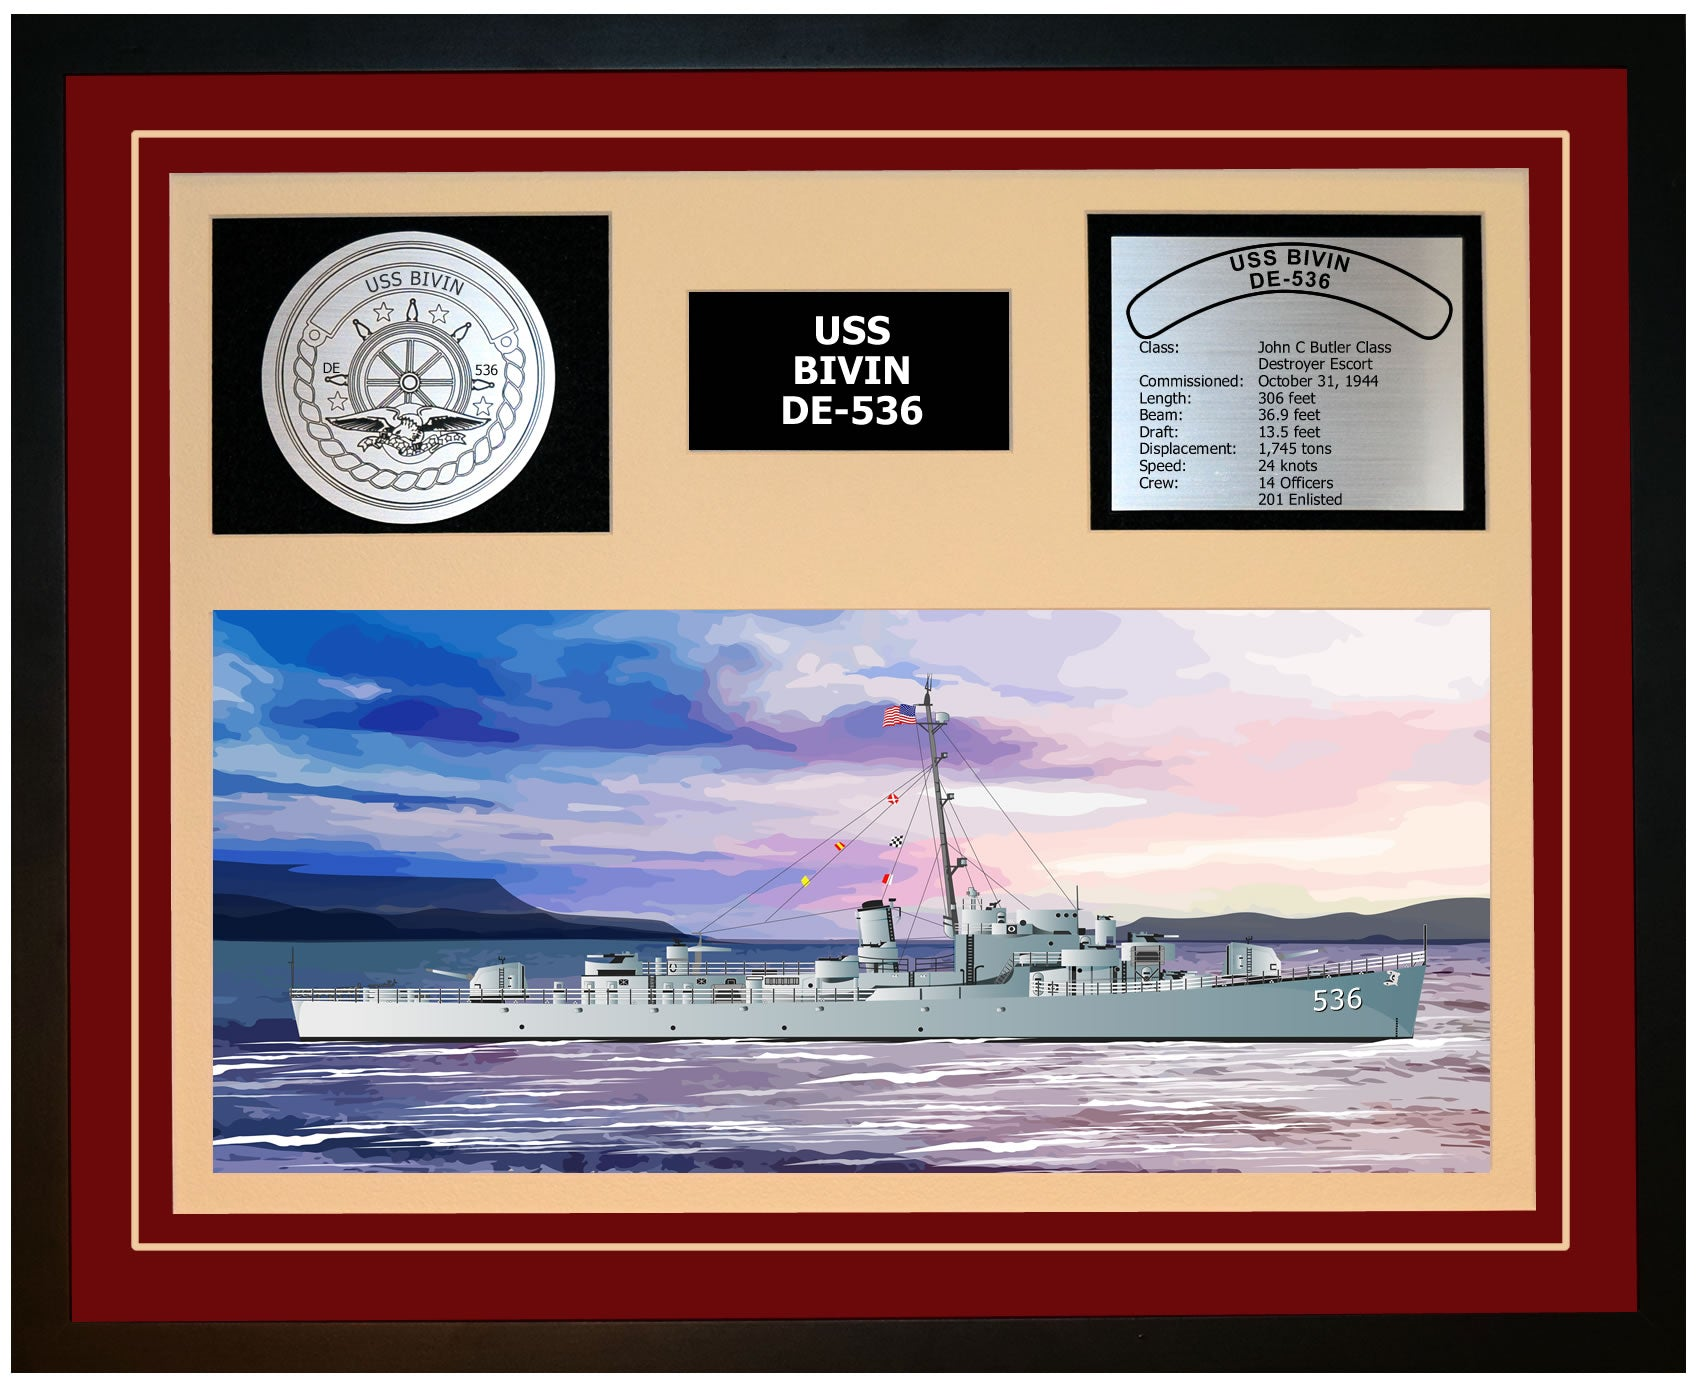 USS BIVIN DE-536 Framed Navy Ship Display Burgundy